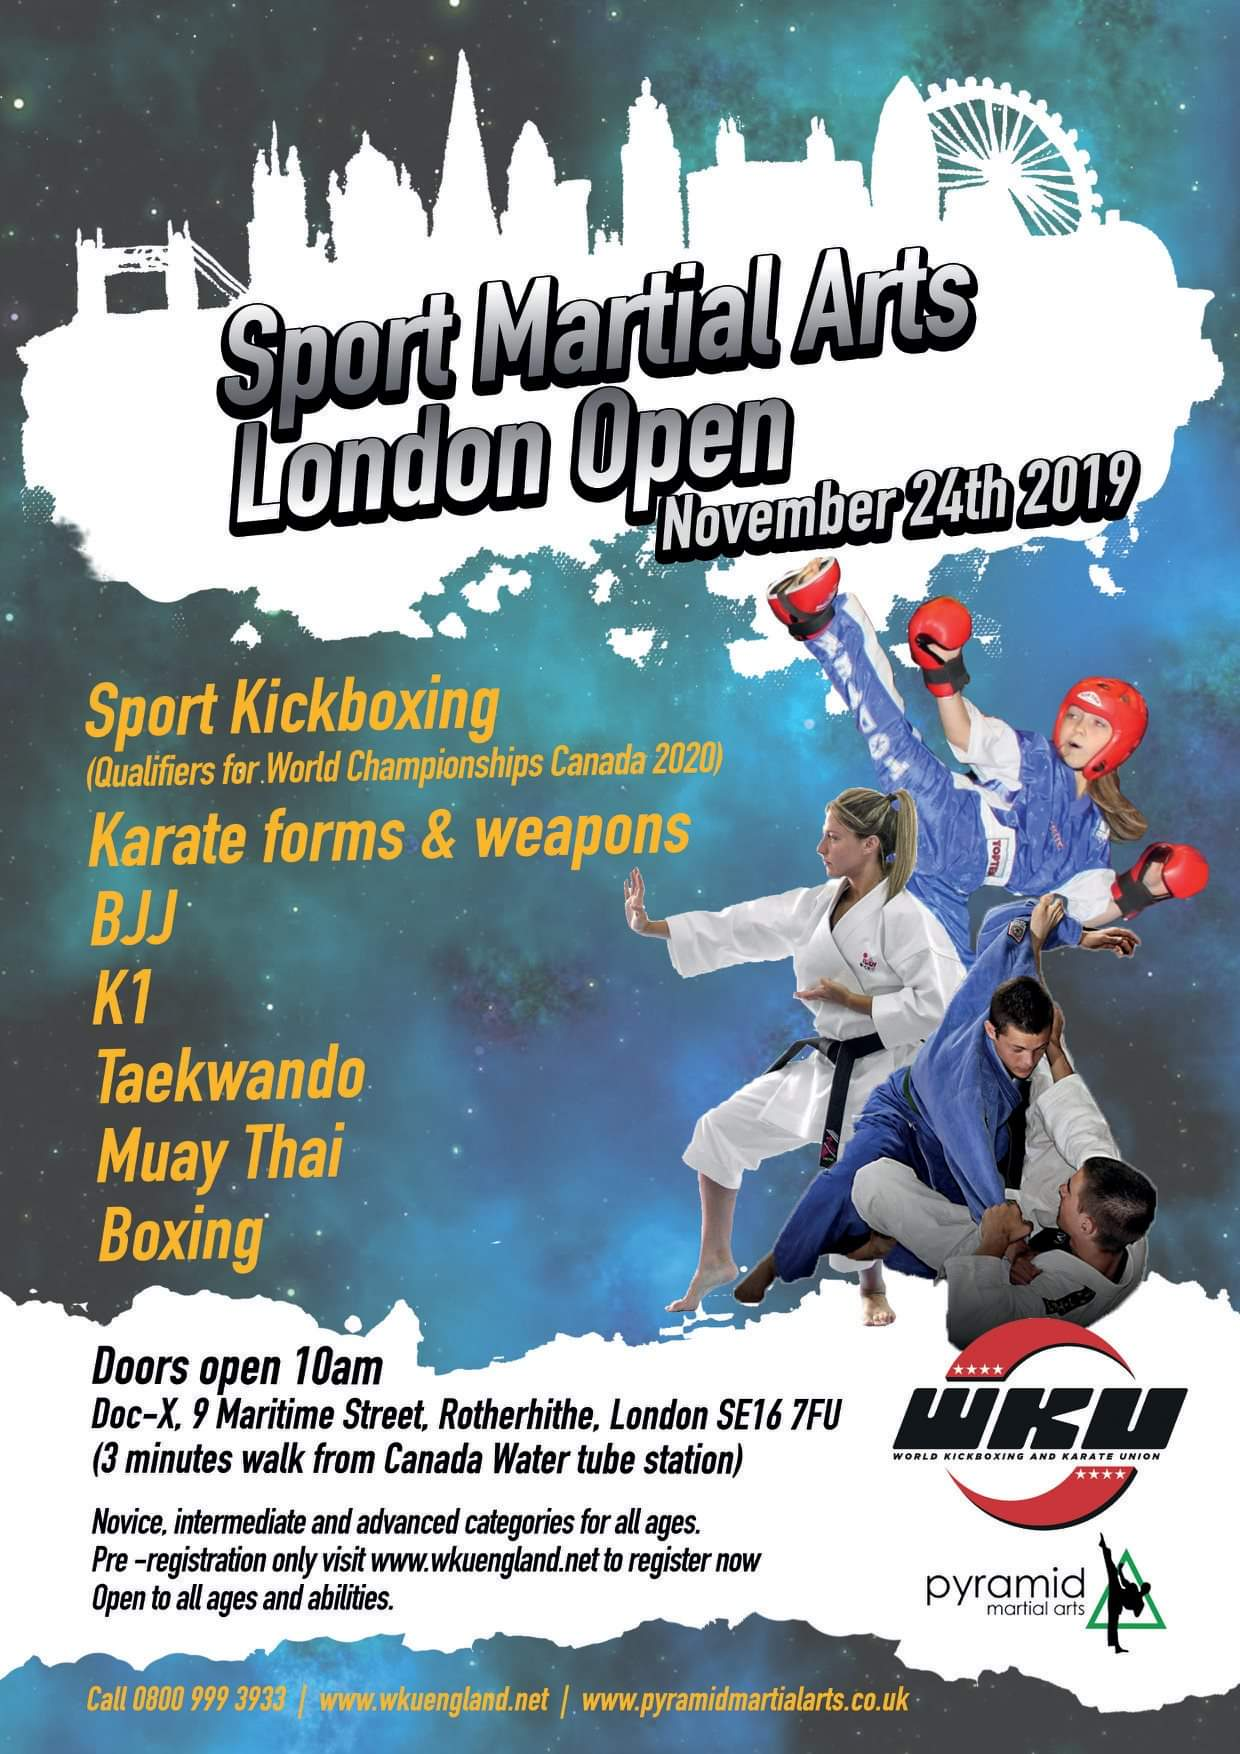 Sport Martial Arts London Open